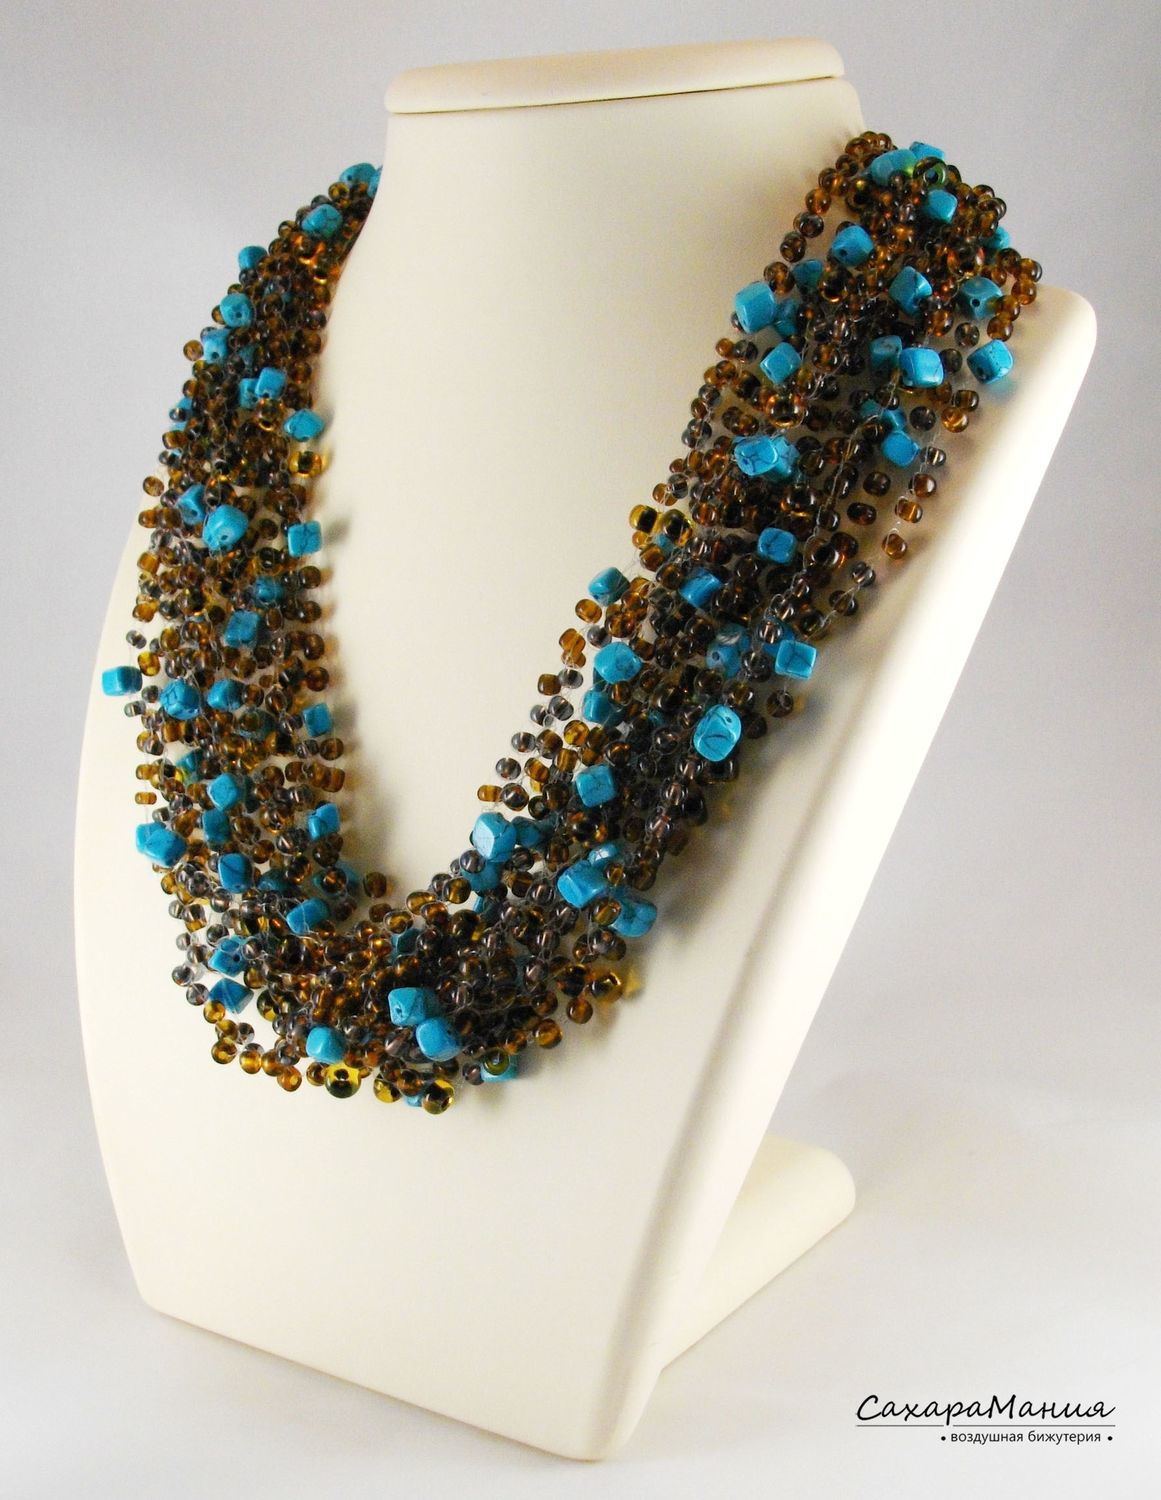 Necklace of natural stone Beautiful jewelry Crochet